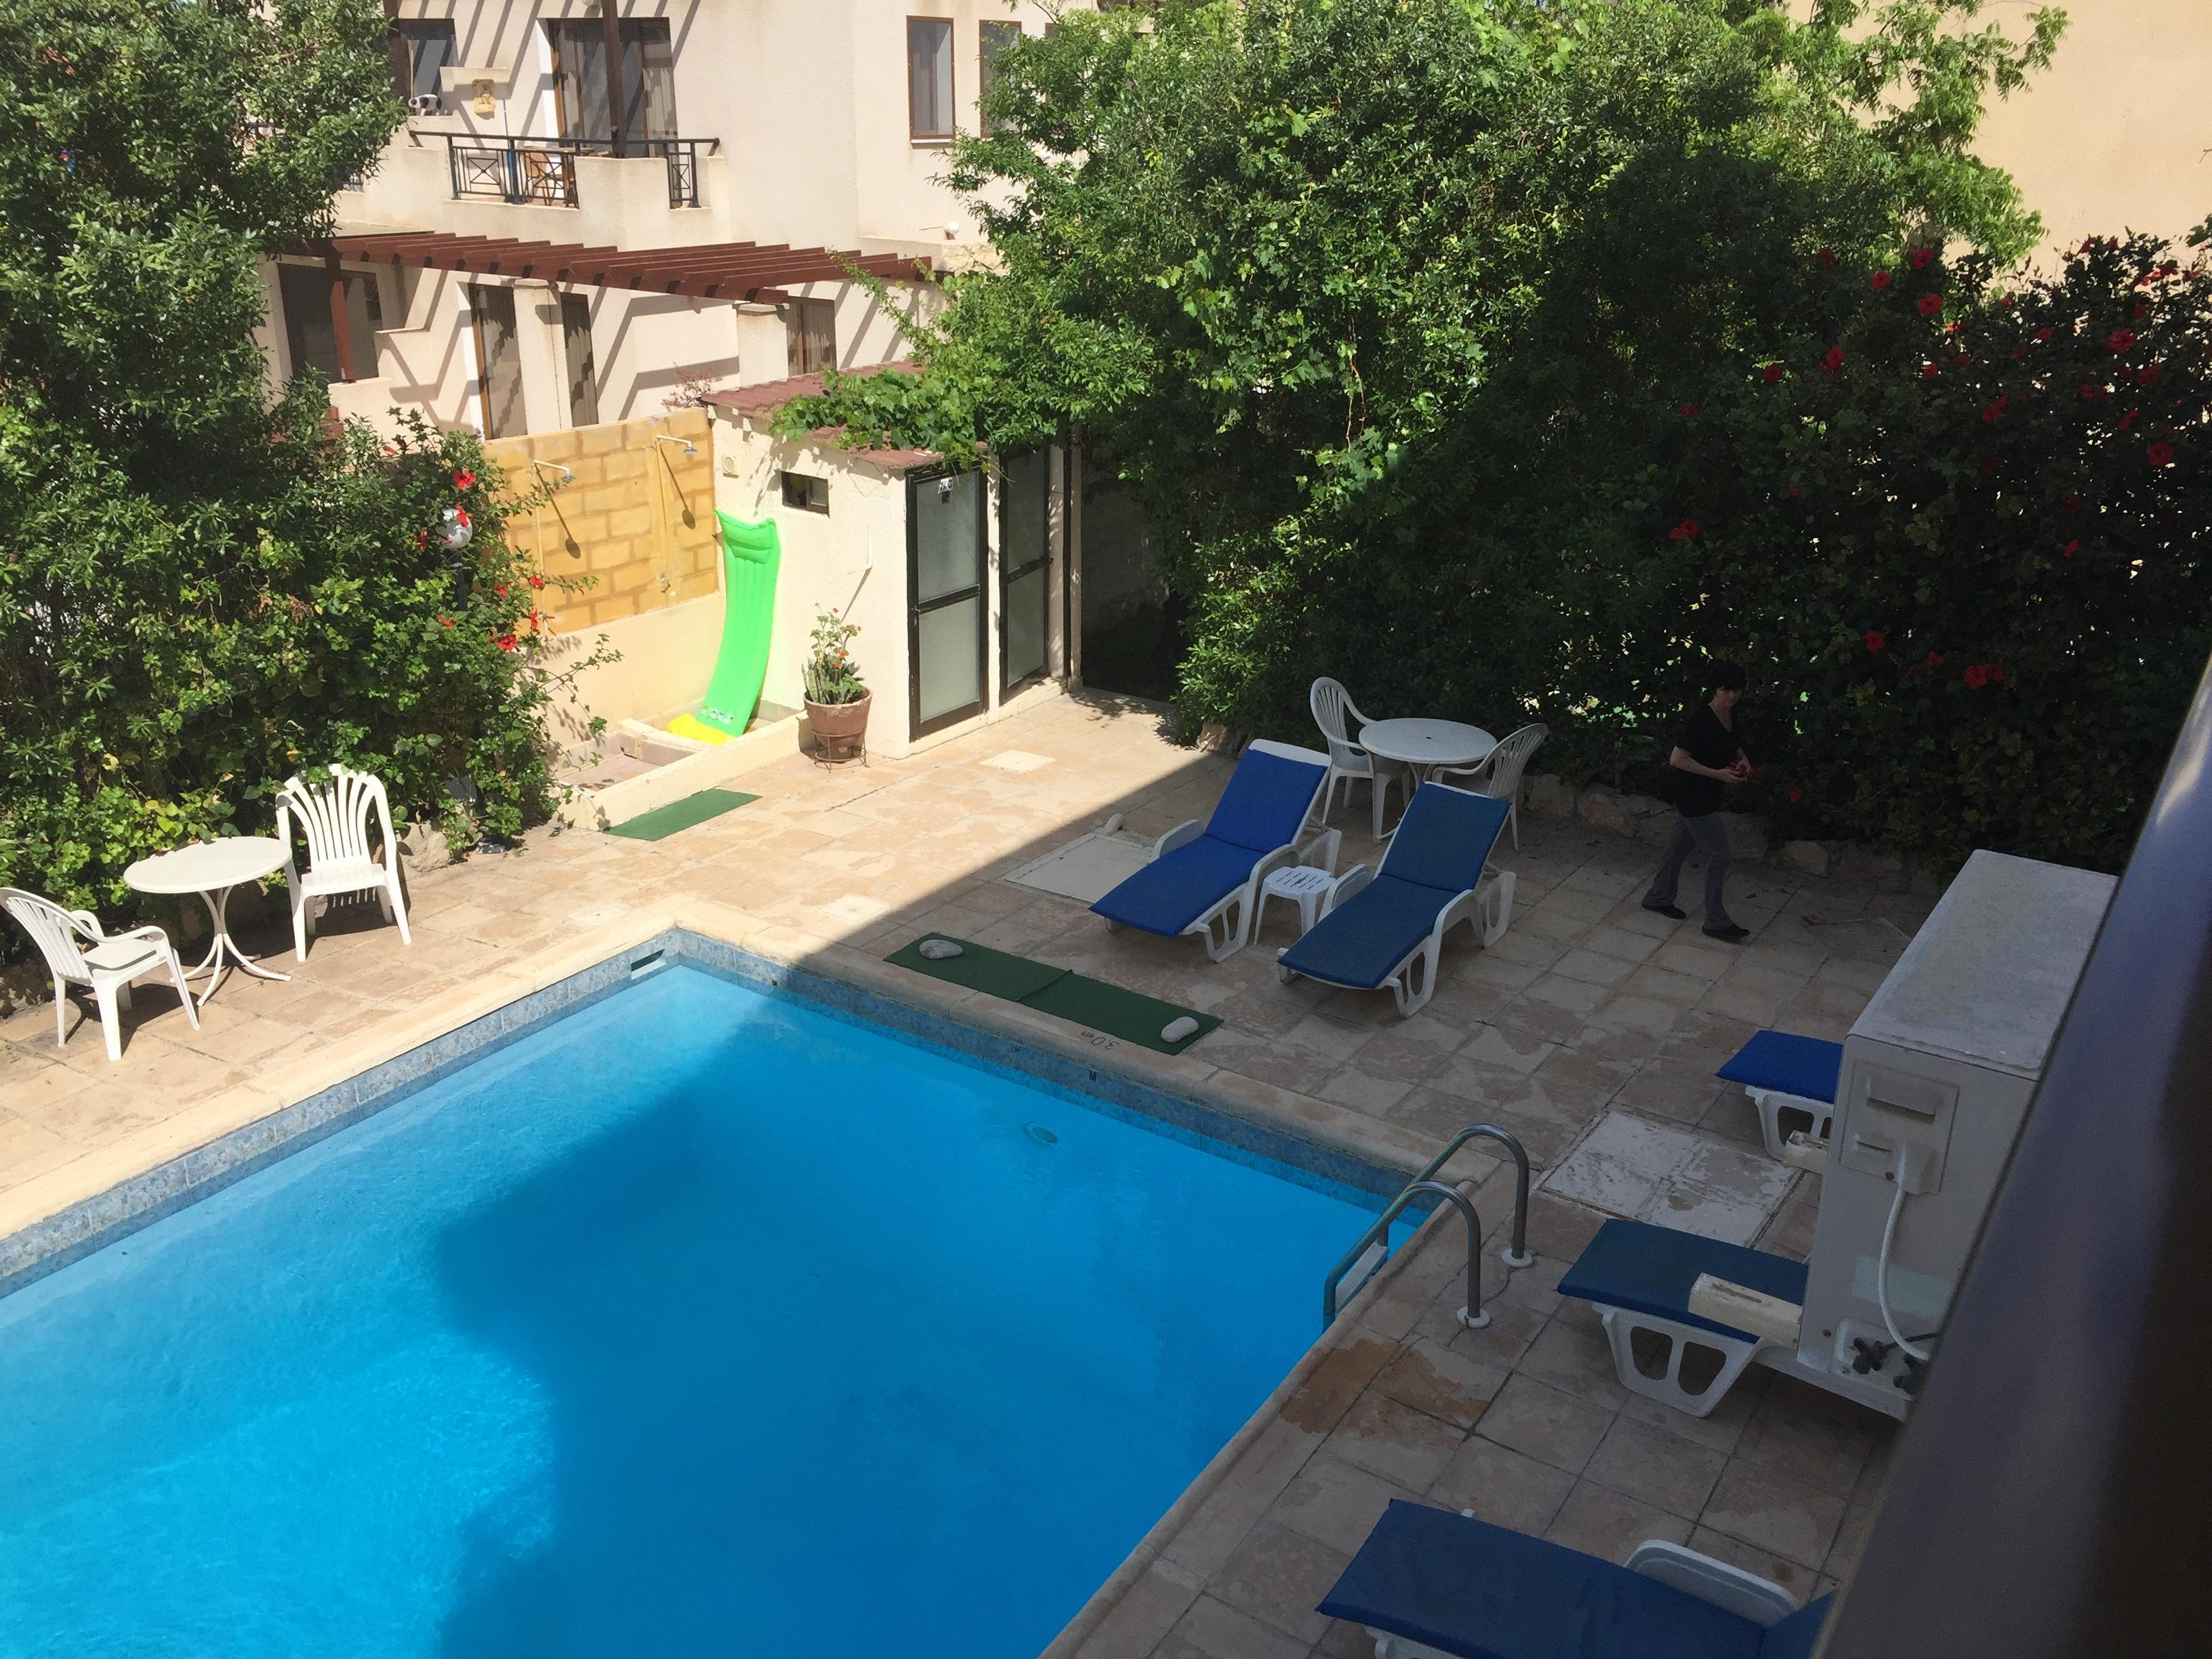 Cash Pool Düsseldorf Hbf Panklitos Tourist Apartments Paphos Hotelbewertungen 2019